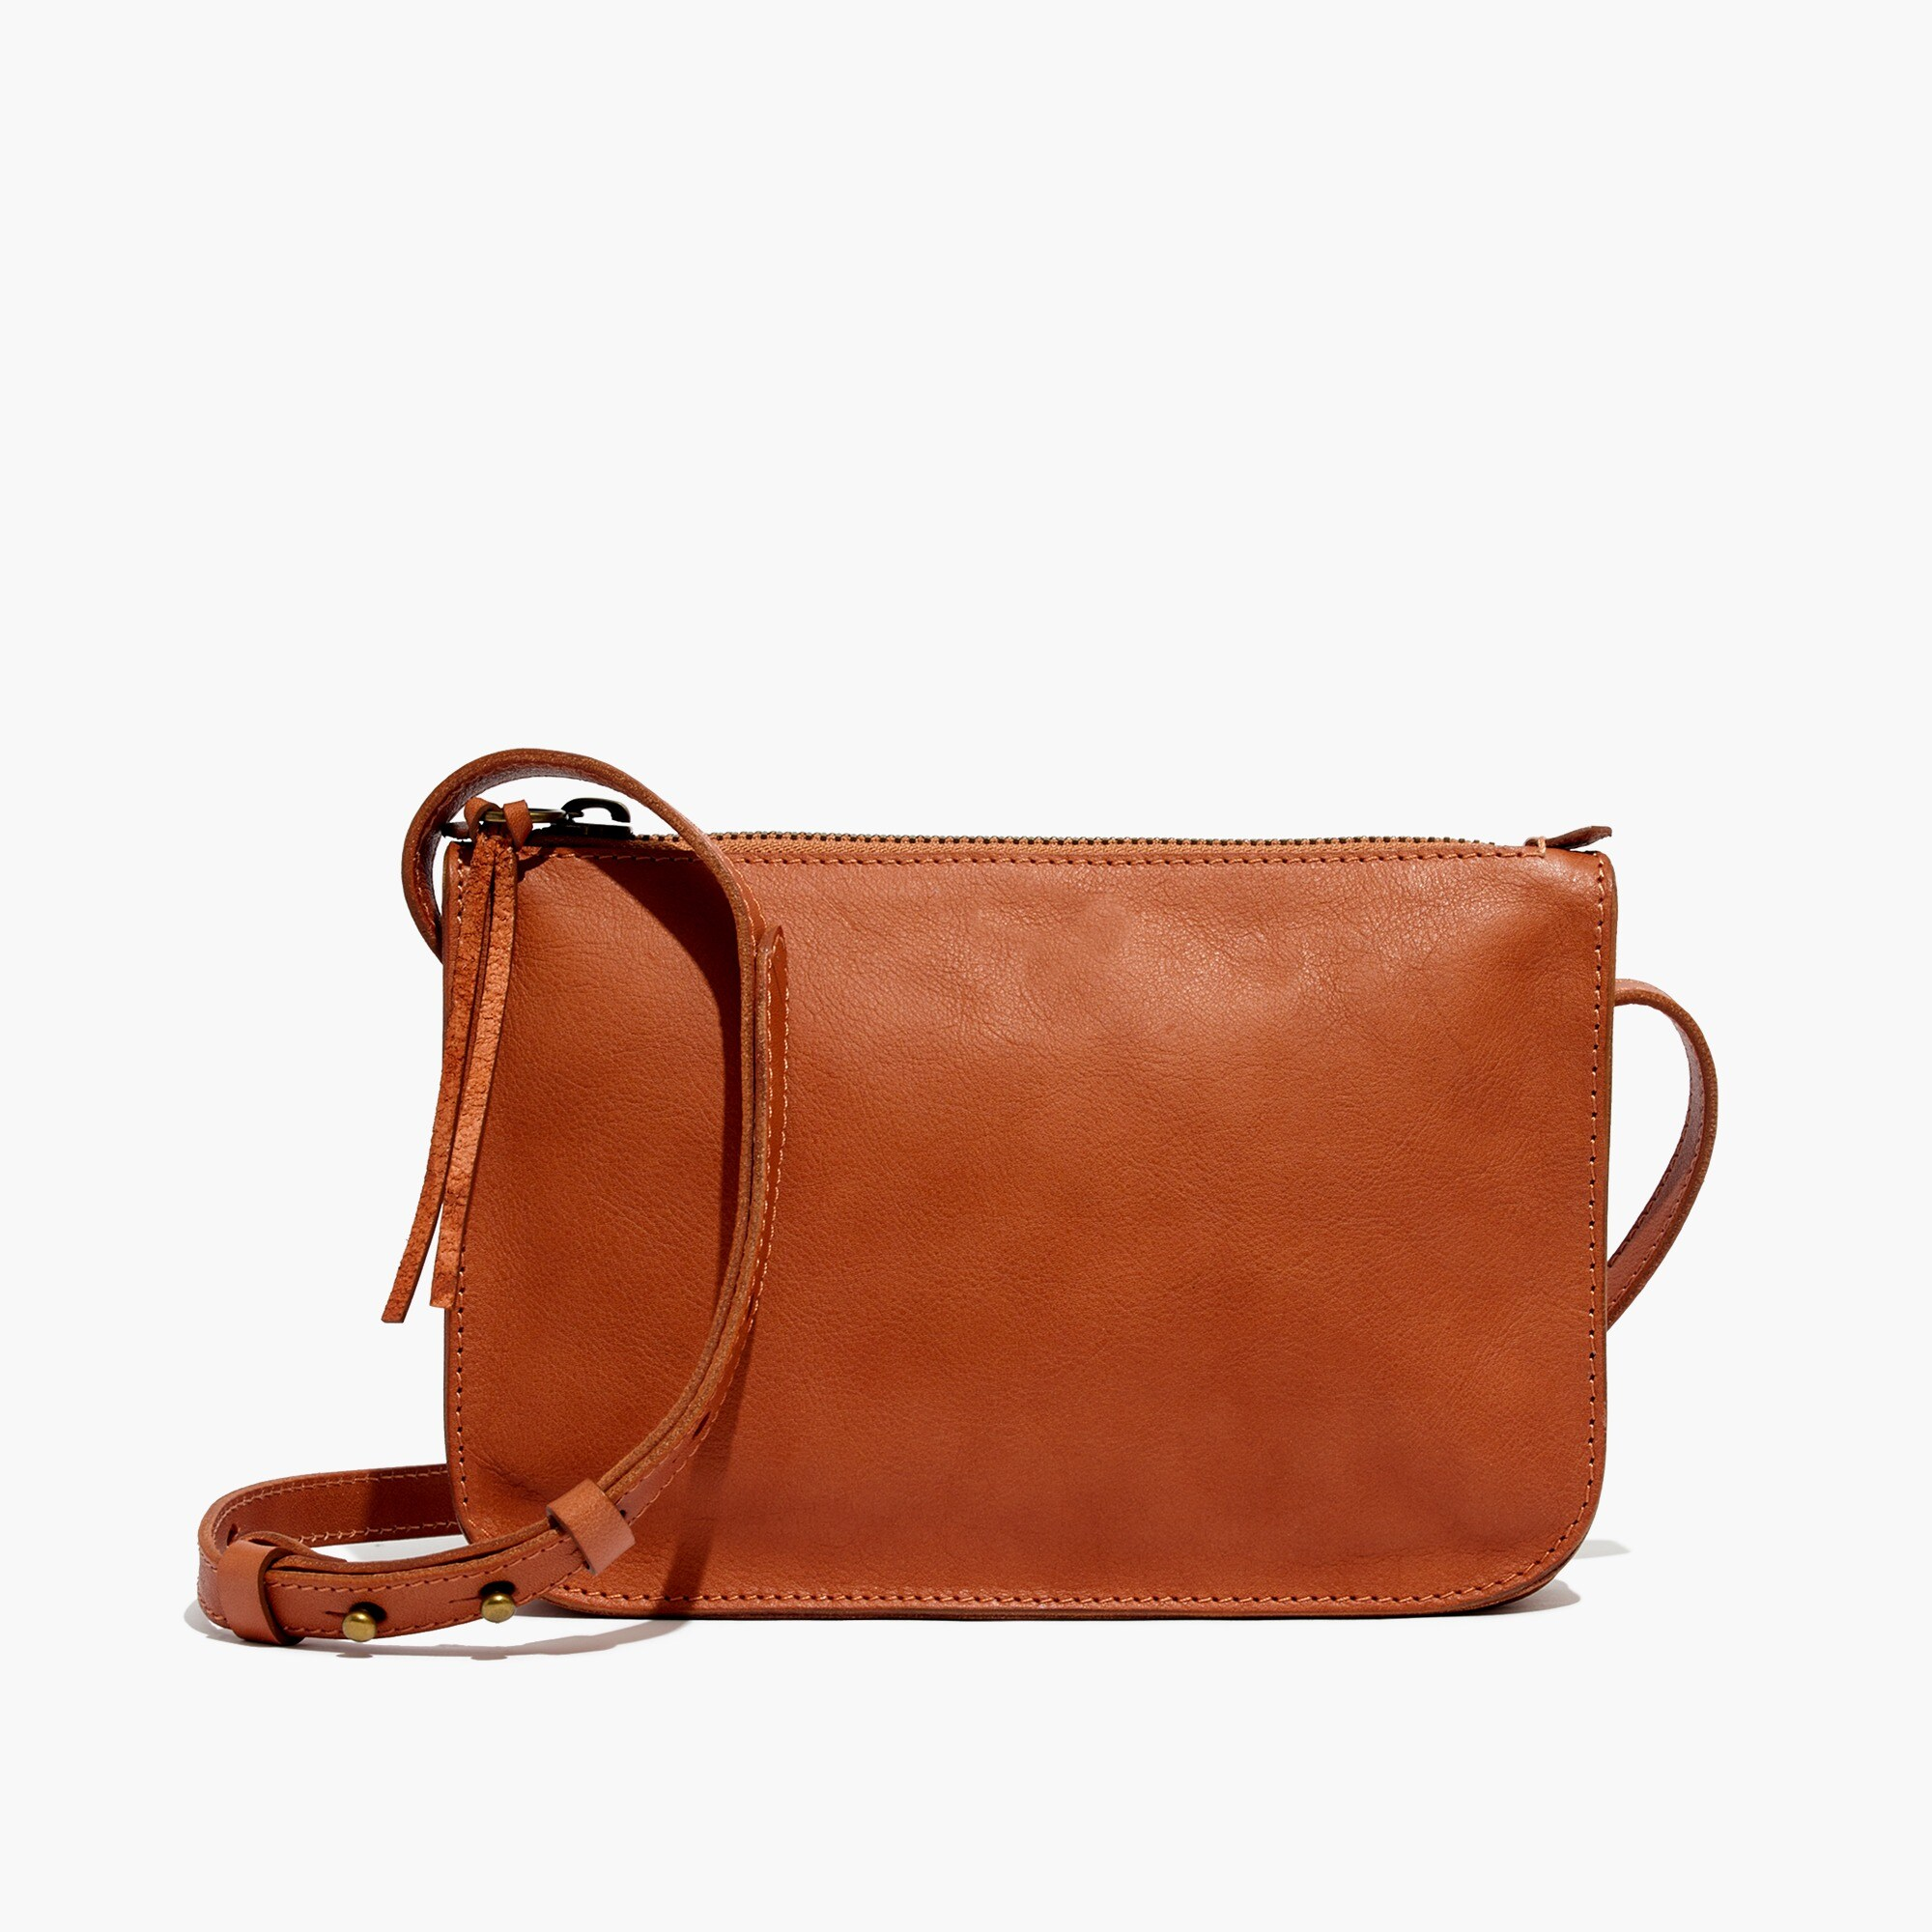 The Madewell simple crossbody bag